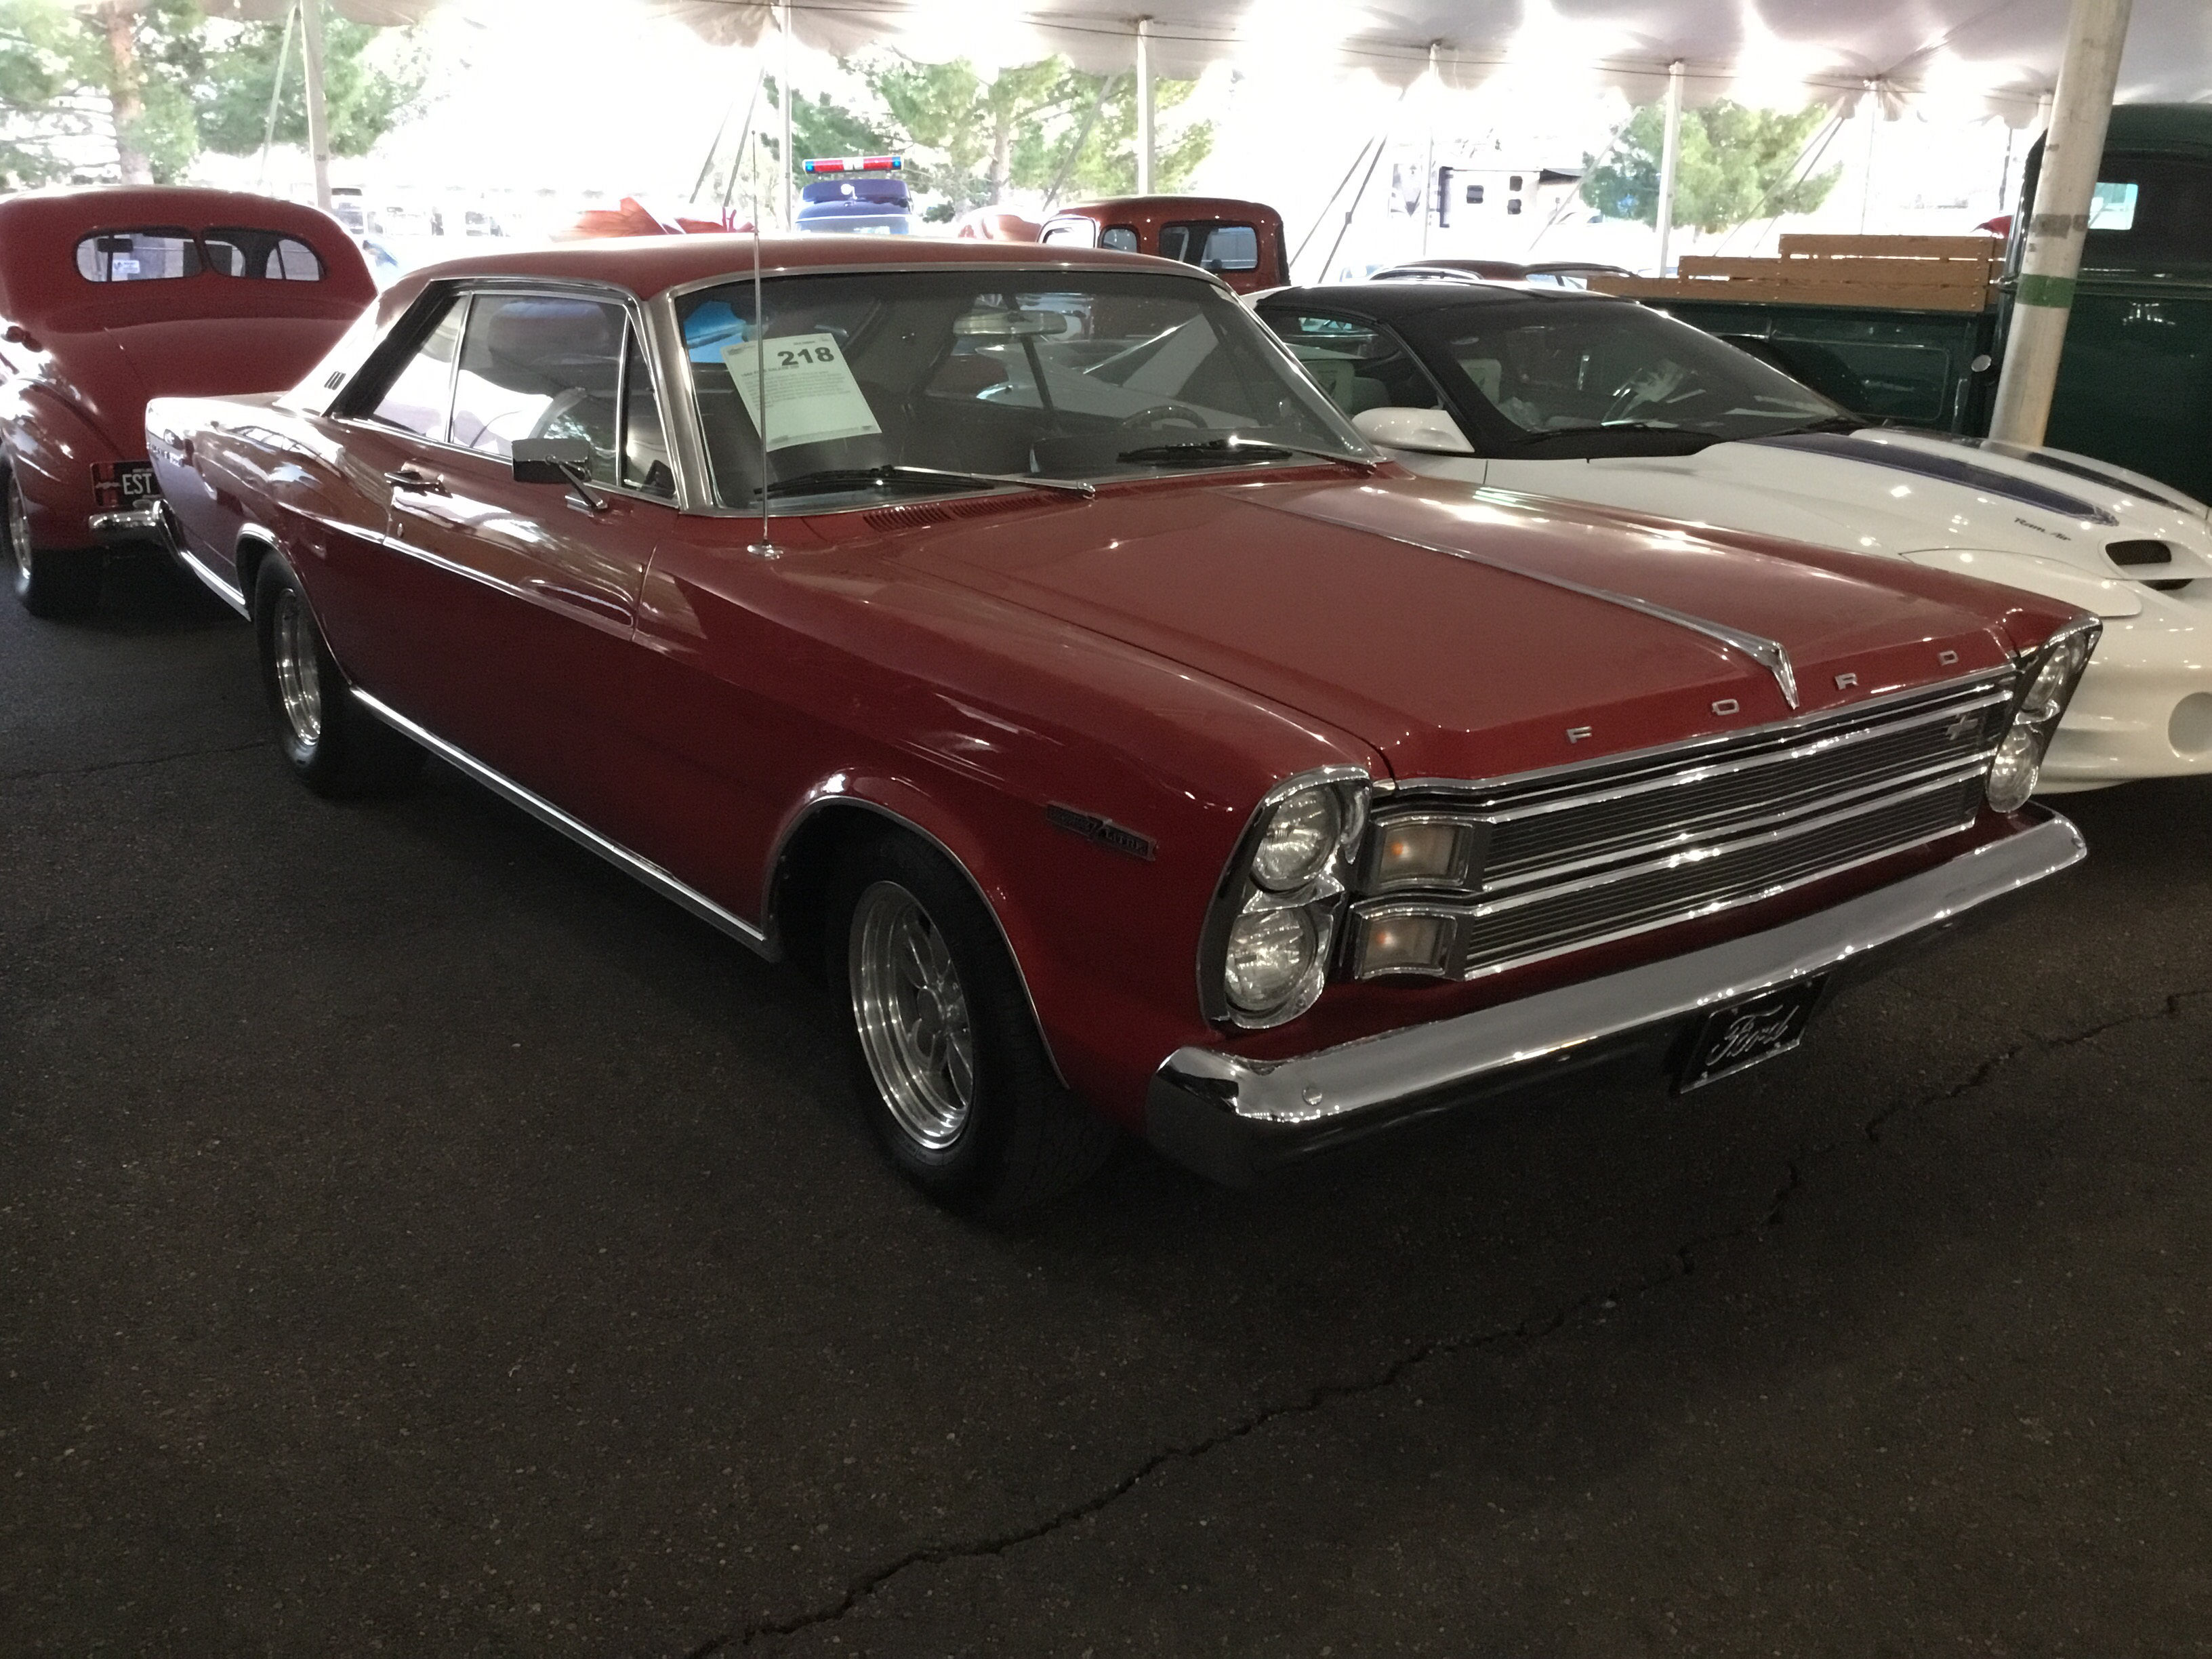 1966 ford galaxie 500 values hagerty valuation tool rh hagerty com